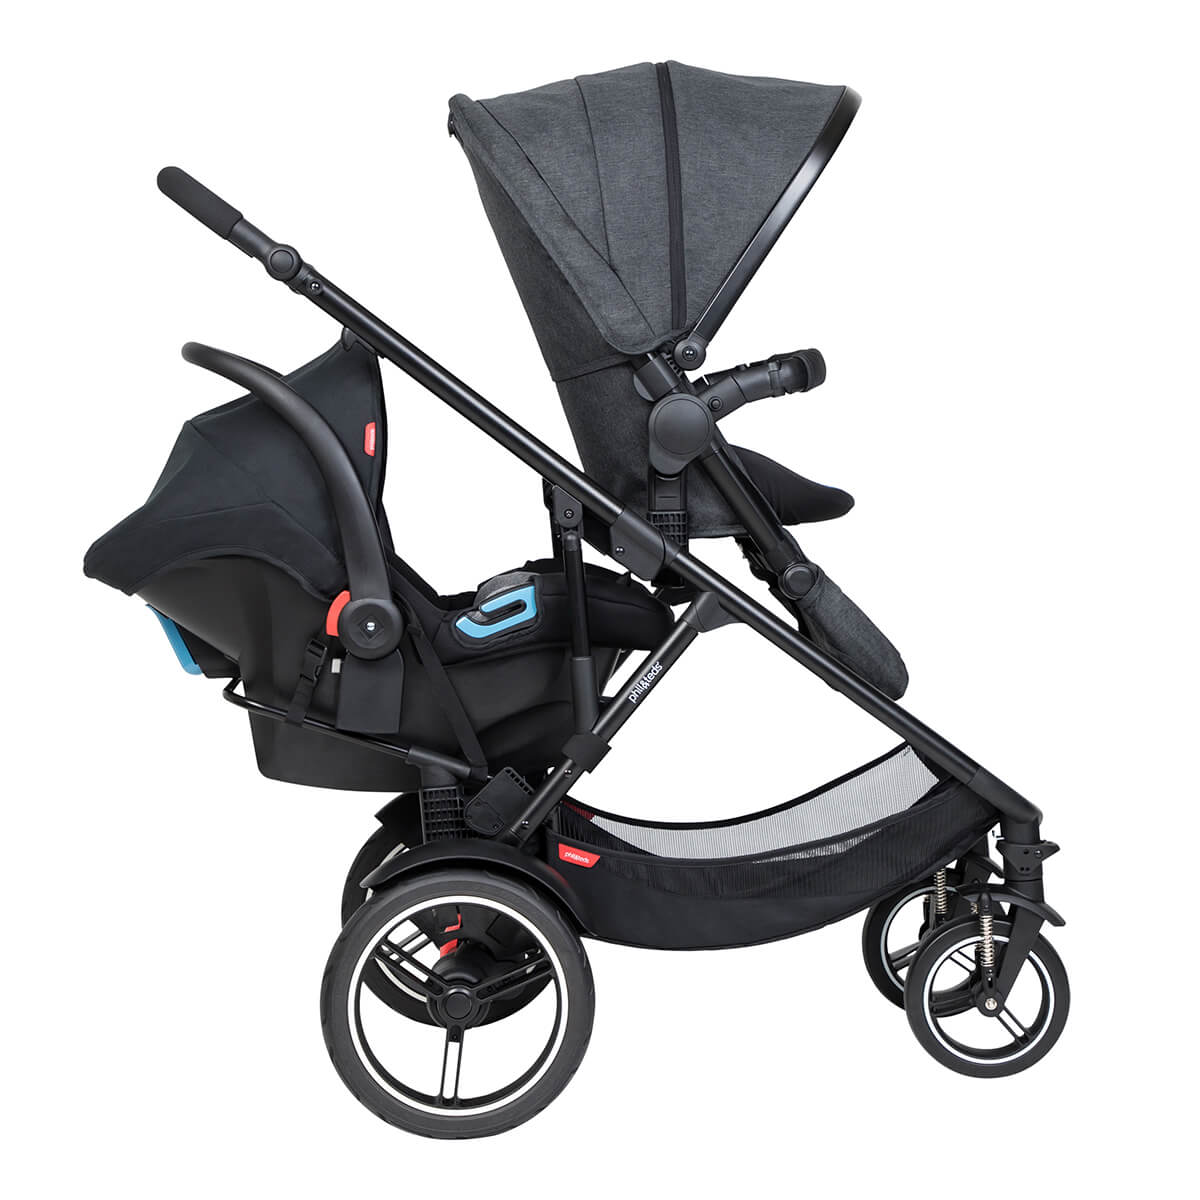 https://cdn.accentuate.io/4546159280233/19119322726505/philteds-voyager-buggy-in-forward-facing-mode-with-travel-system-in-the-rear-v1625778580759.jpg?1200x1200